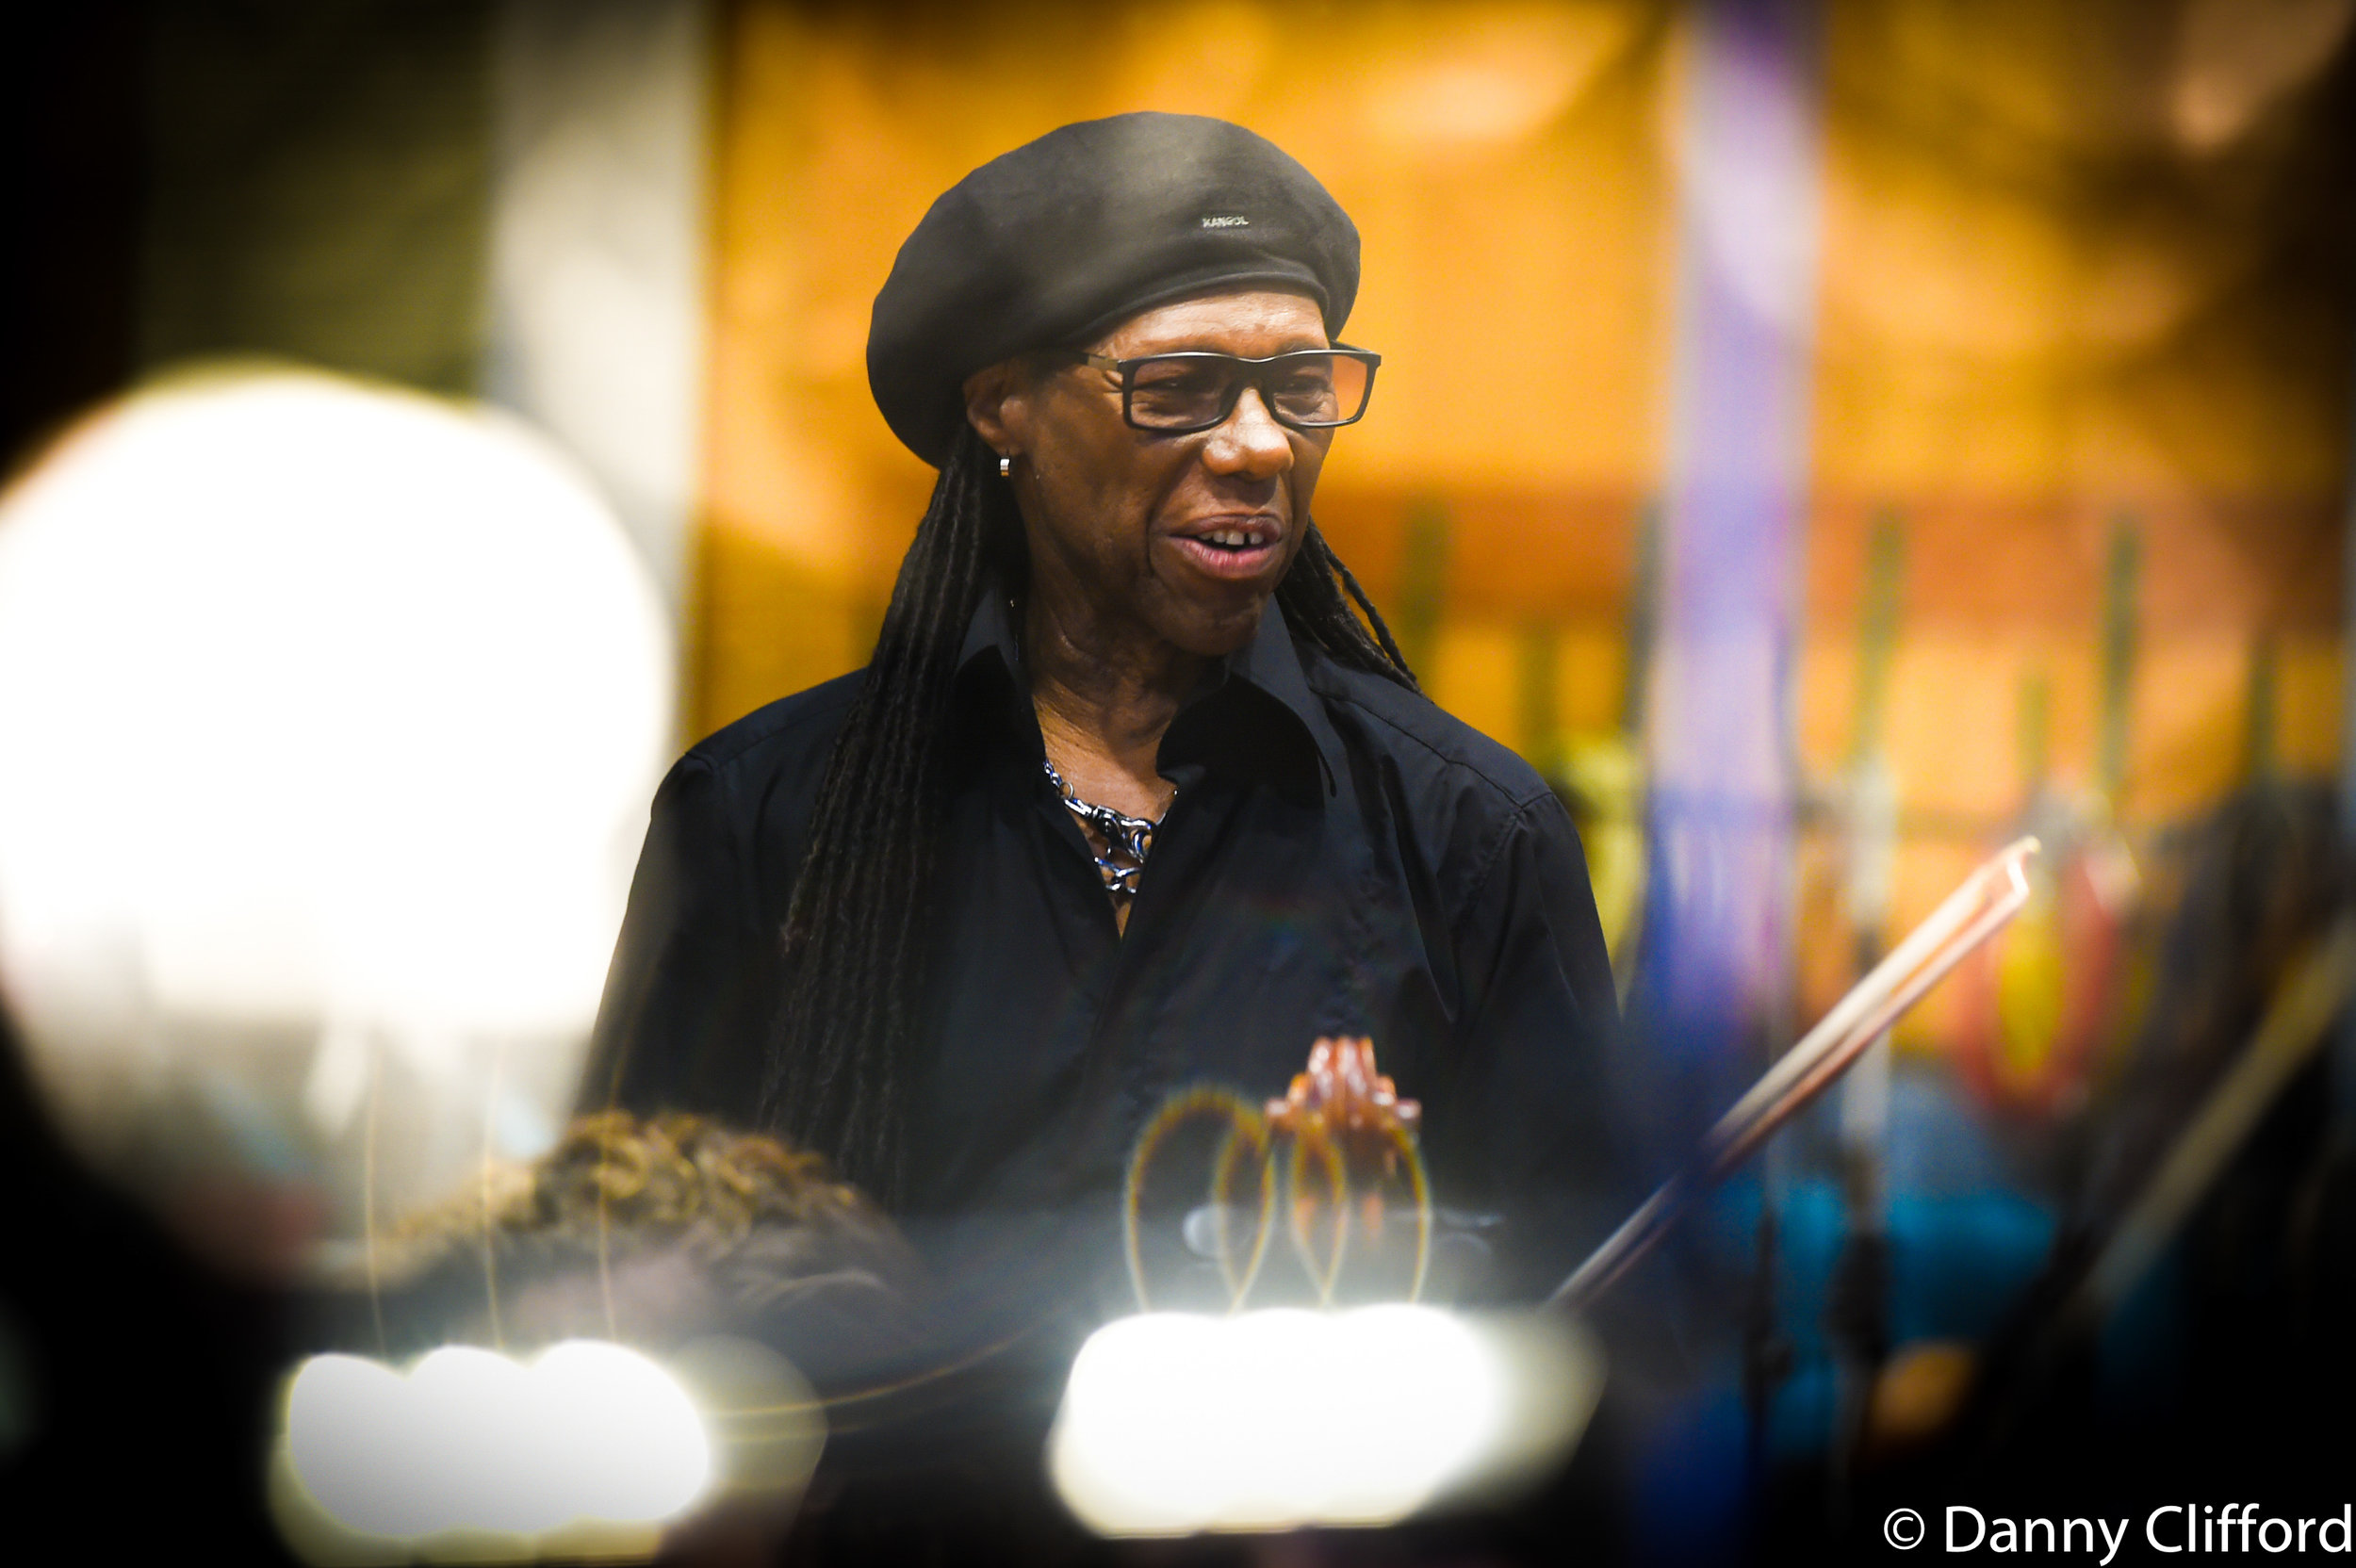 Nile Rodgers in Studio 1 during the Lets Dance, David Bowie track.